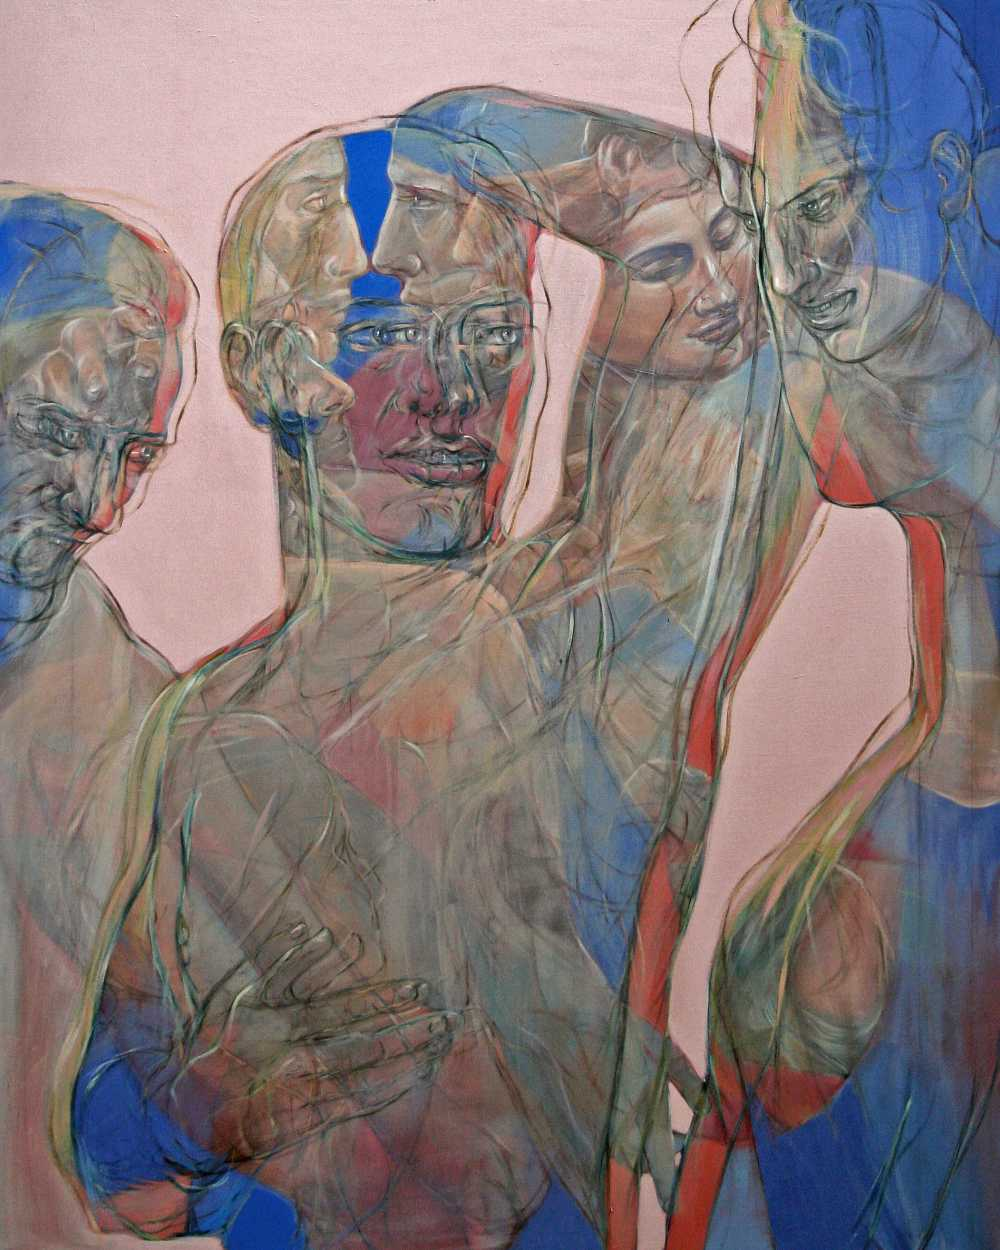 Narziss, 2016, Oil on linen, 150 x 120 cm, Antike Dispositionen, artfein GALLERY, Henri Deparade